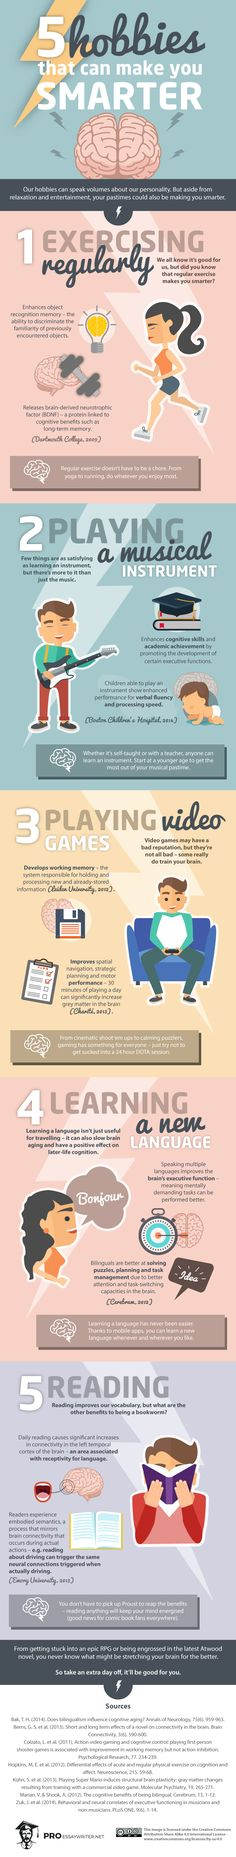 5 Hobbies that Can Make you Smarter #infographic #Health